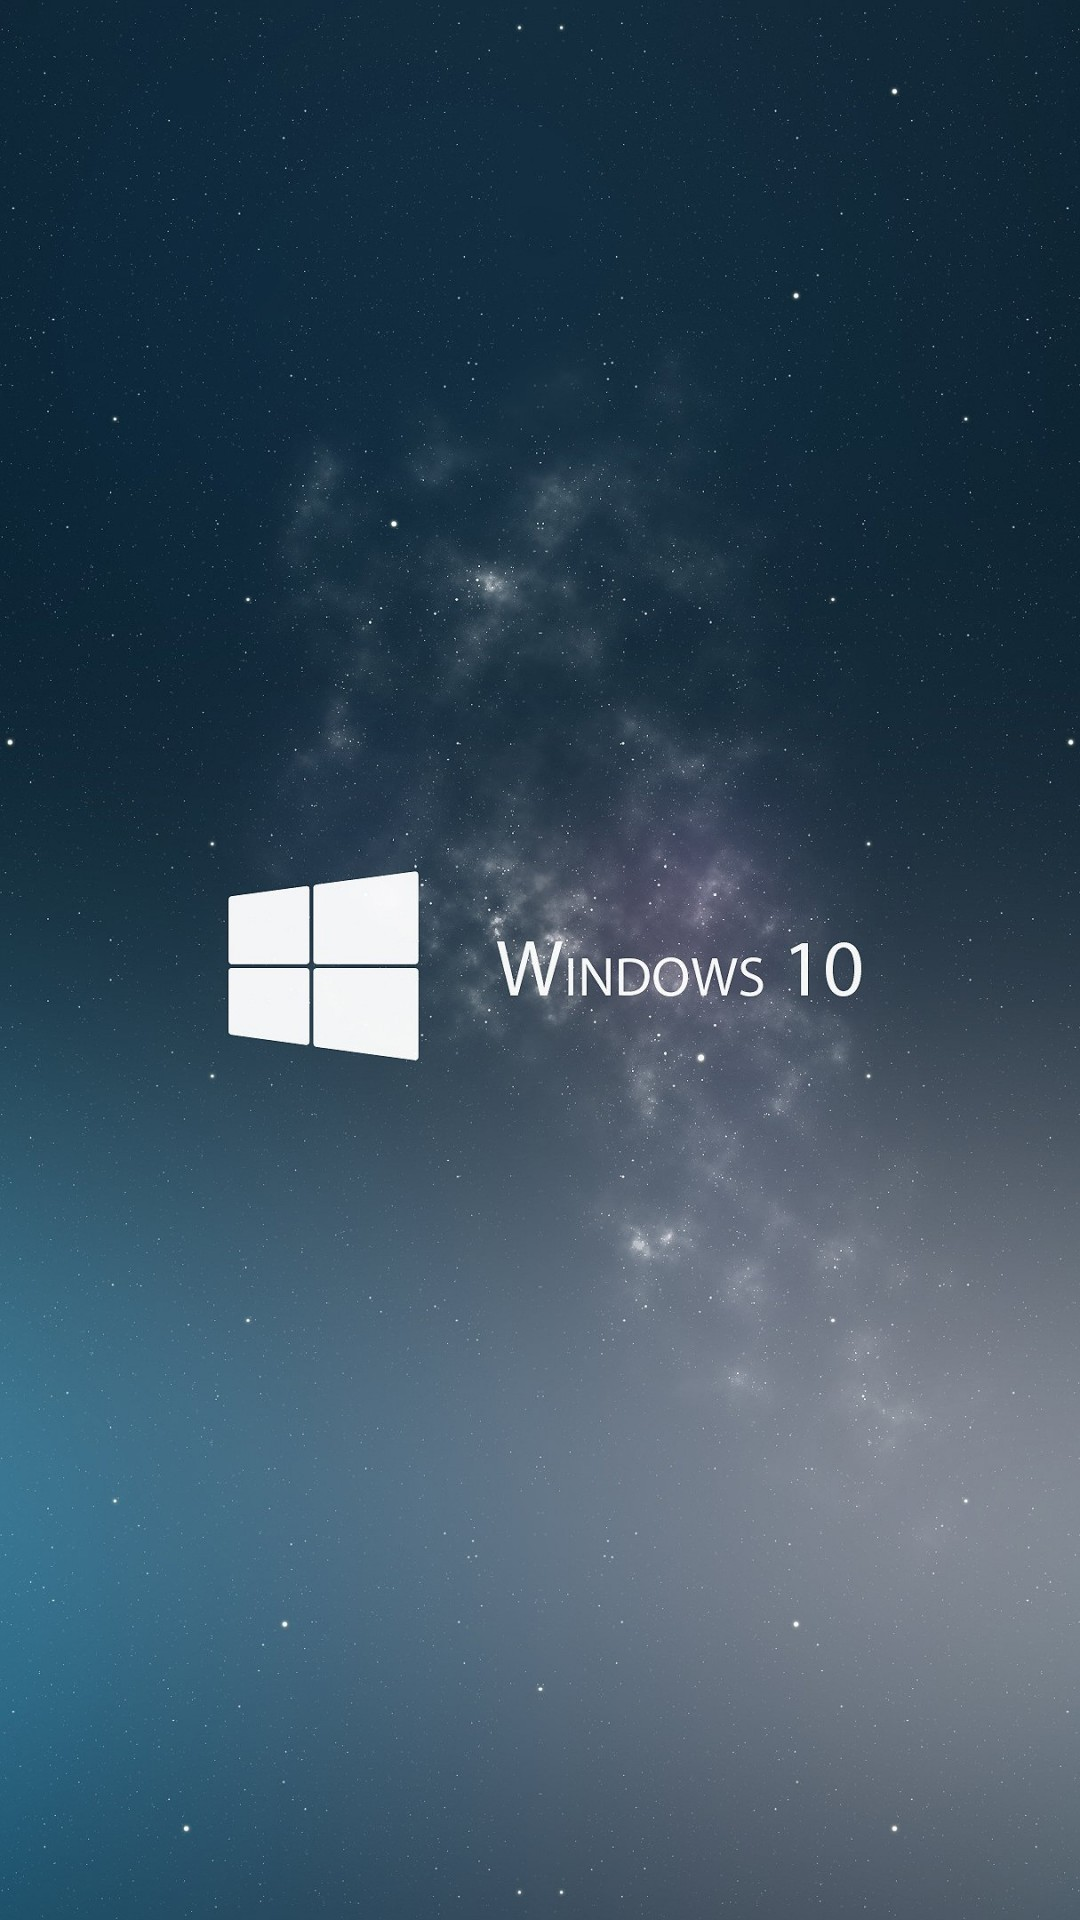 Windows 10 Wallpaper for SAMSUNG Galaxy Note 3